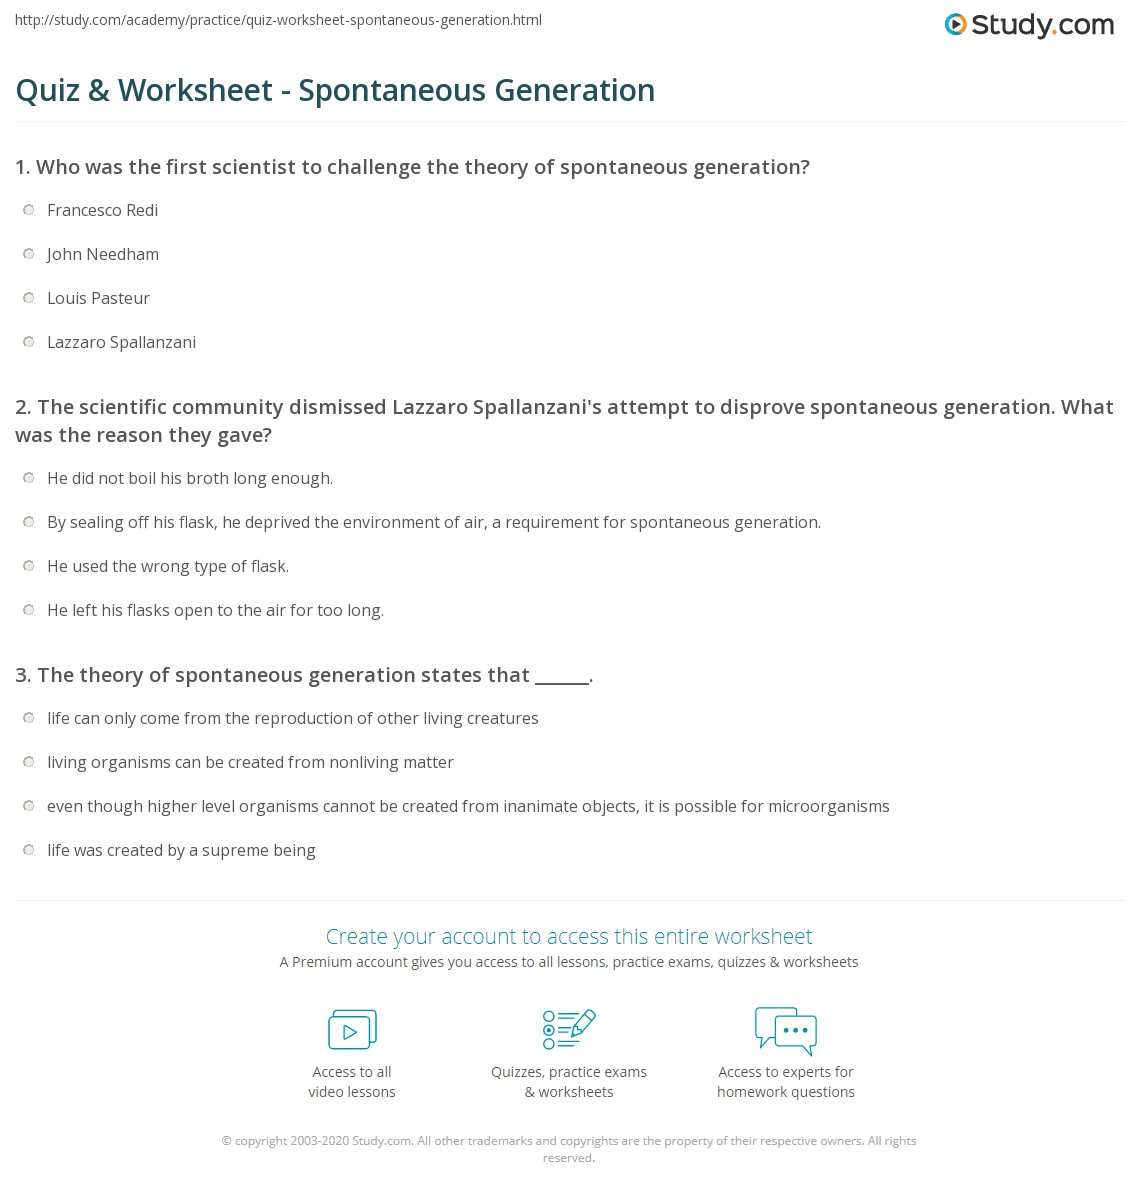 Aldiablosus  Remarkable Quiz Amp Worksheet  Spontaneous Generation  Studycom With Marvelous Print Spontaneous Generation Definition Theory Amp Examples Worksheet With Amazing Space Worksheets Also Base  Blocks Worksheets In Addition Color Word Worksheets And Free Telling Time Worksheets As Well As Learning Colors Worksheets Additionally Ocean Worksheets From Studycom With Aldiablosus  Marvelous Quiz Amp Worksheet  Spontaneous Generation  Studycom With Amazing Print Spontaneous Generation Definition Theory Amp Examples Worksheet And Remarkable Space Worksheets Also Base  Blocks Worksheets In Addition Color Word Worksheets From Studycom